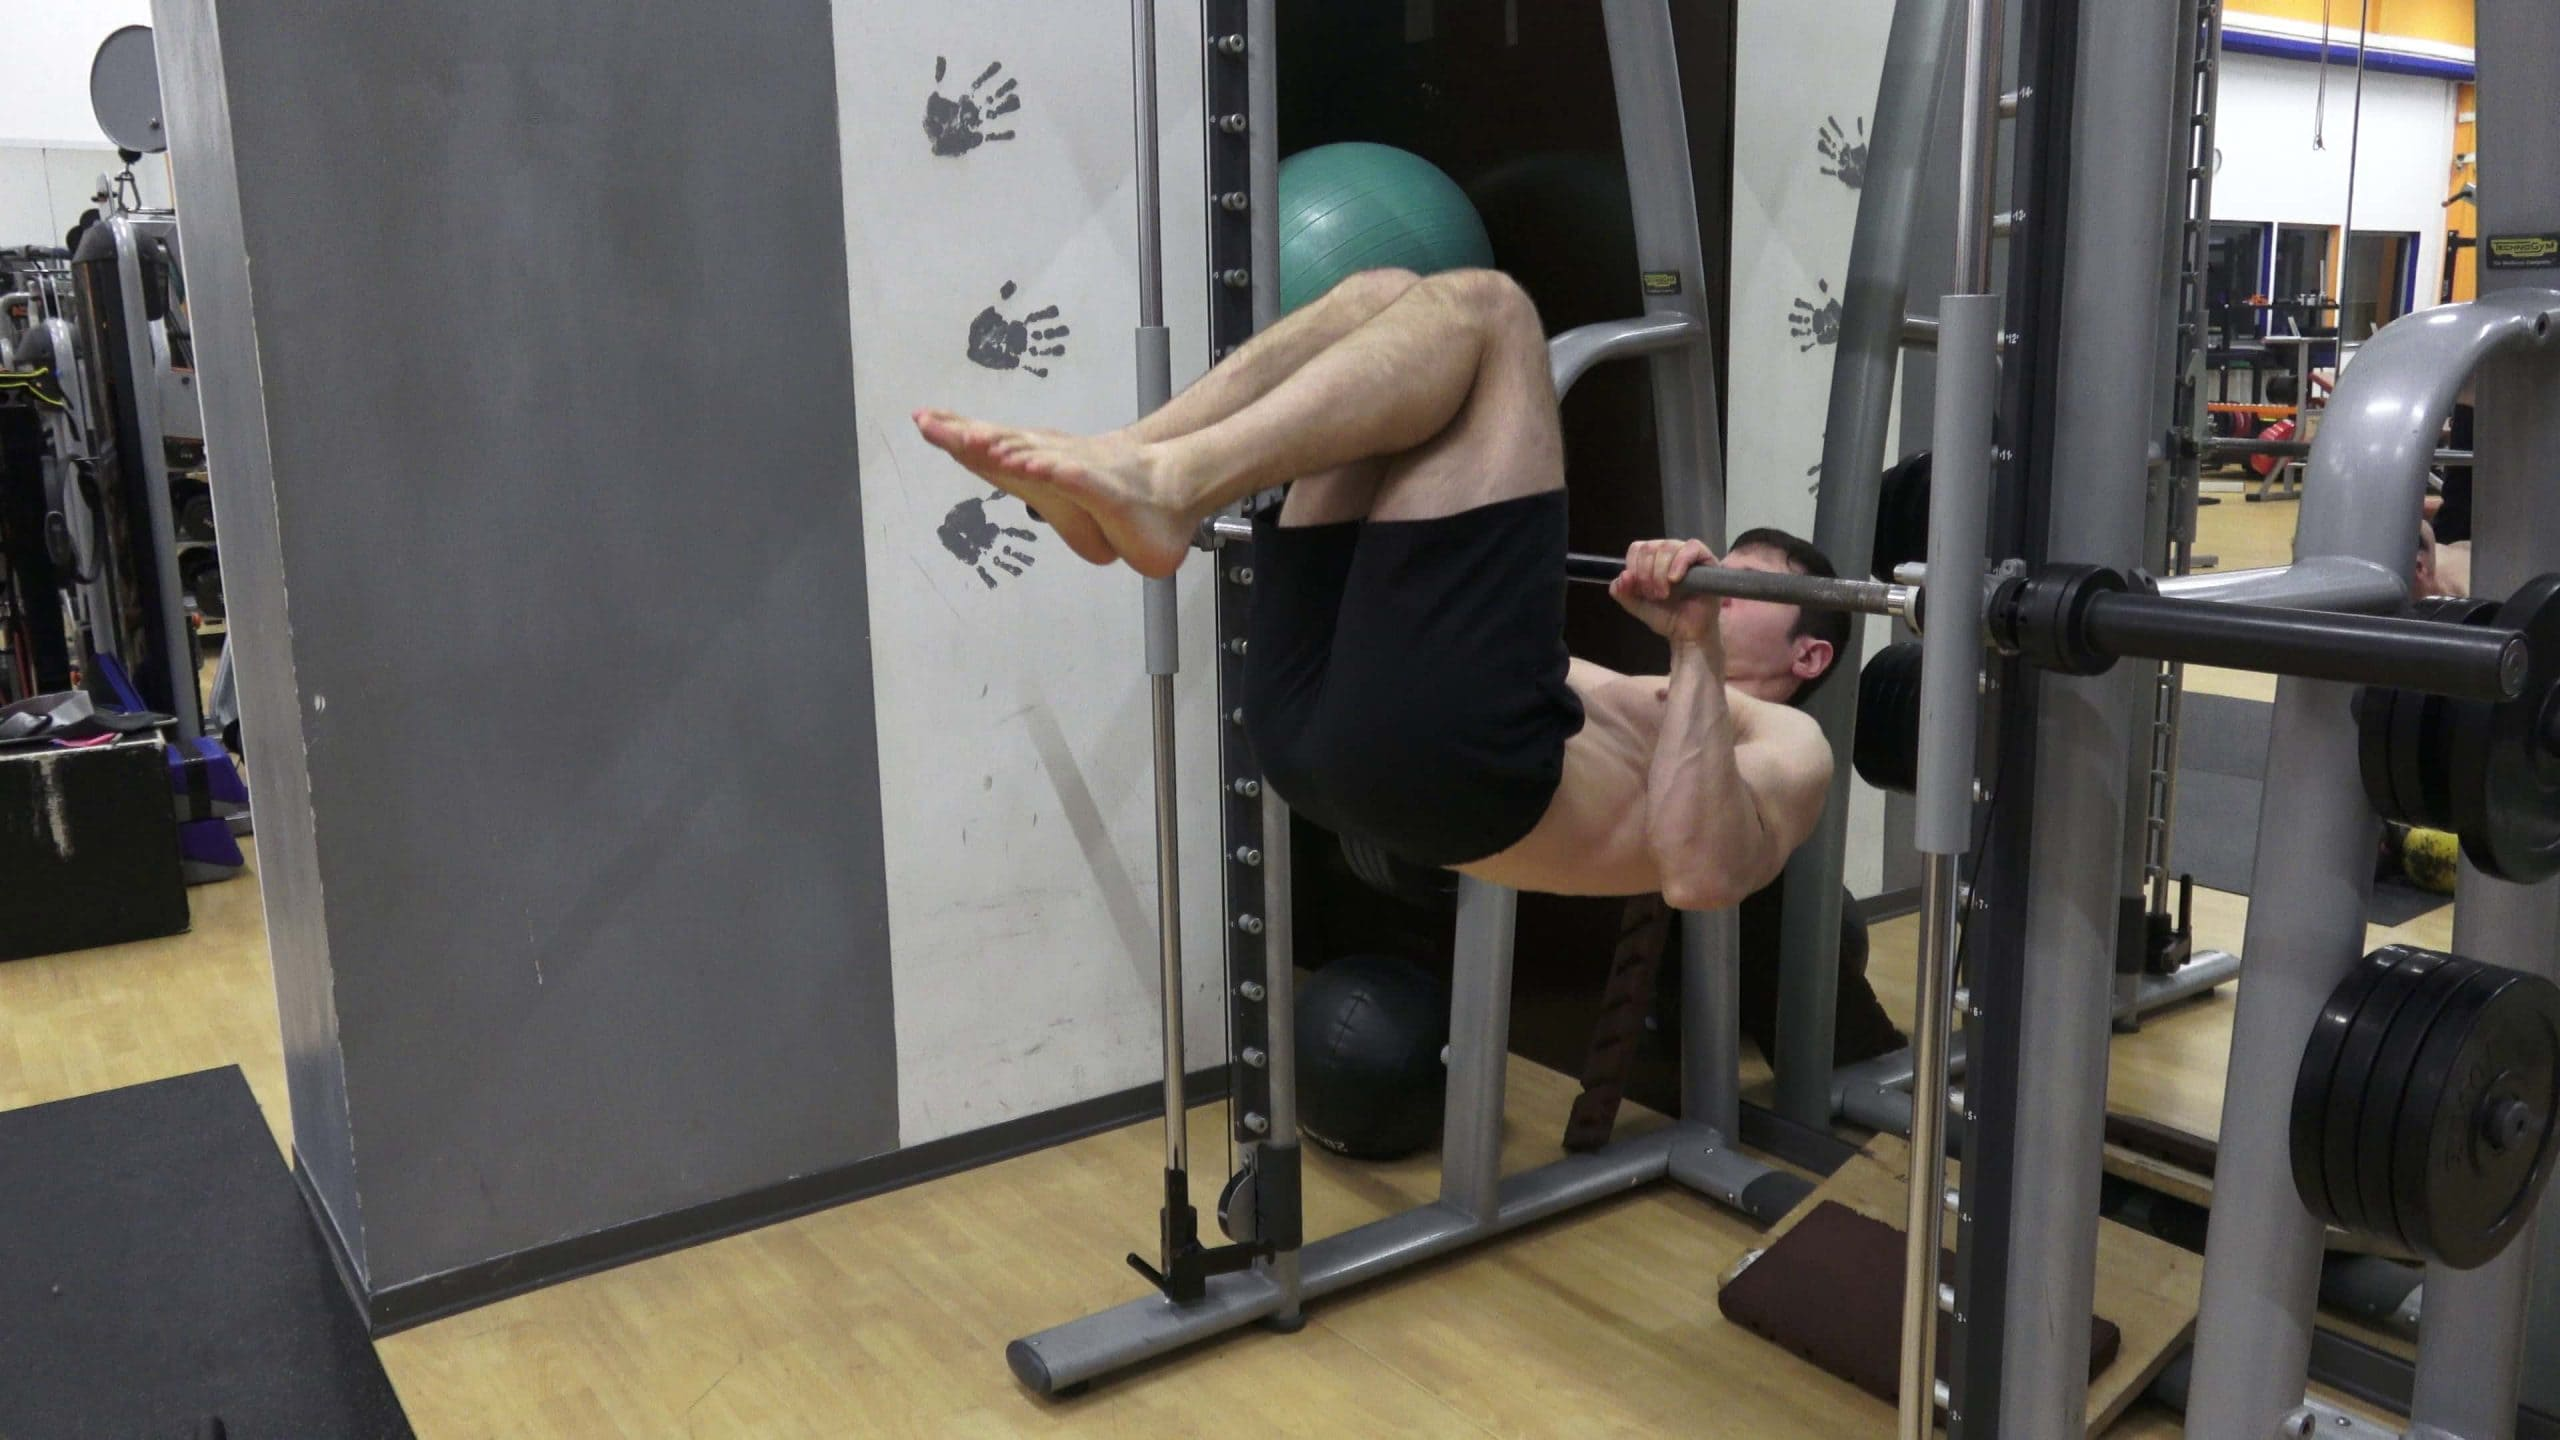 Alessandro Mainente esegue un advanced tuck Front Lever Pull-up